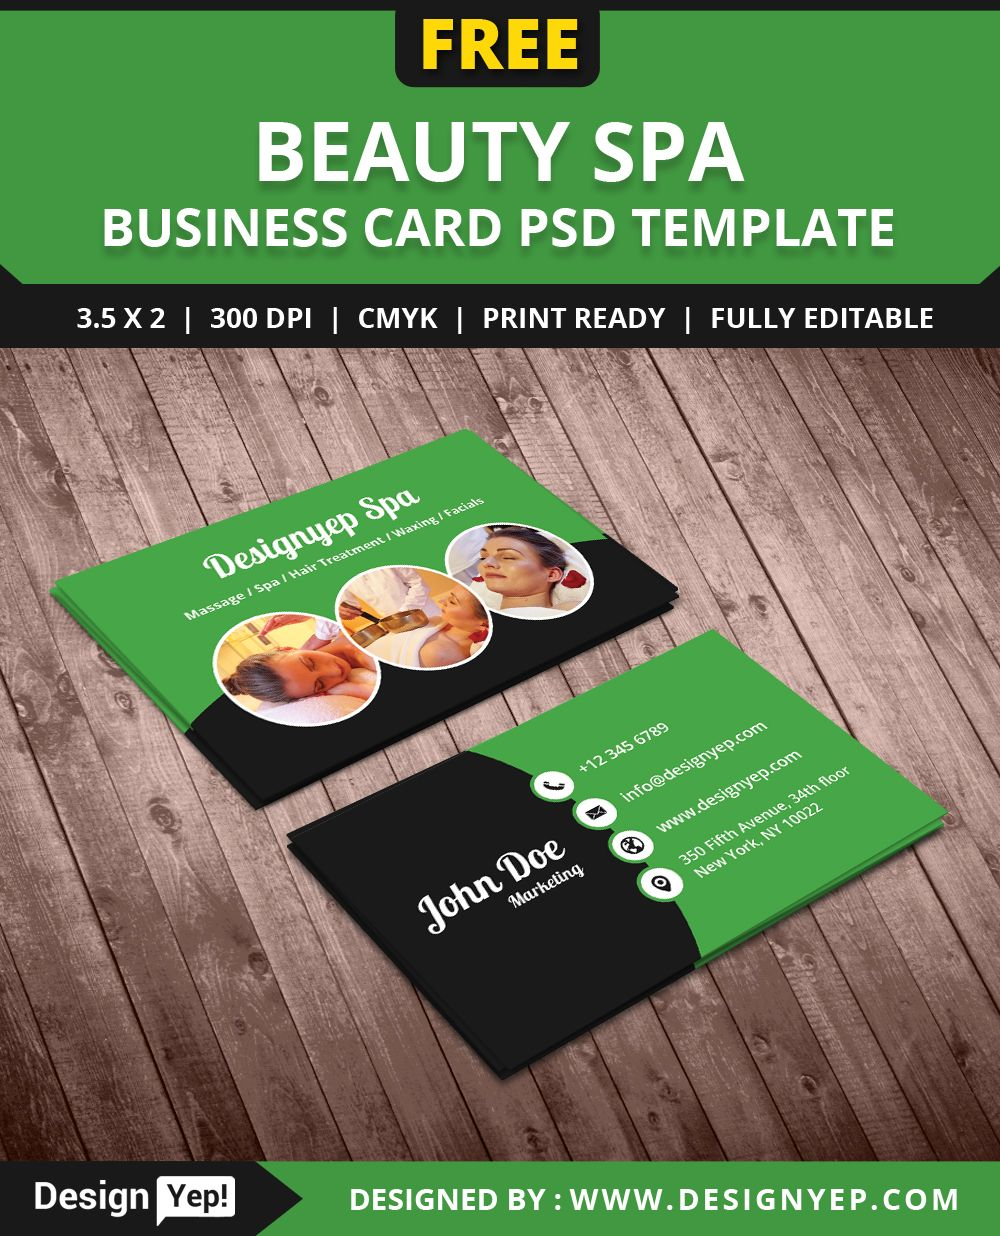 FreeBeautySpaBusinessCardPSDTemplateDesignYep Free - Editable business card templates free